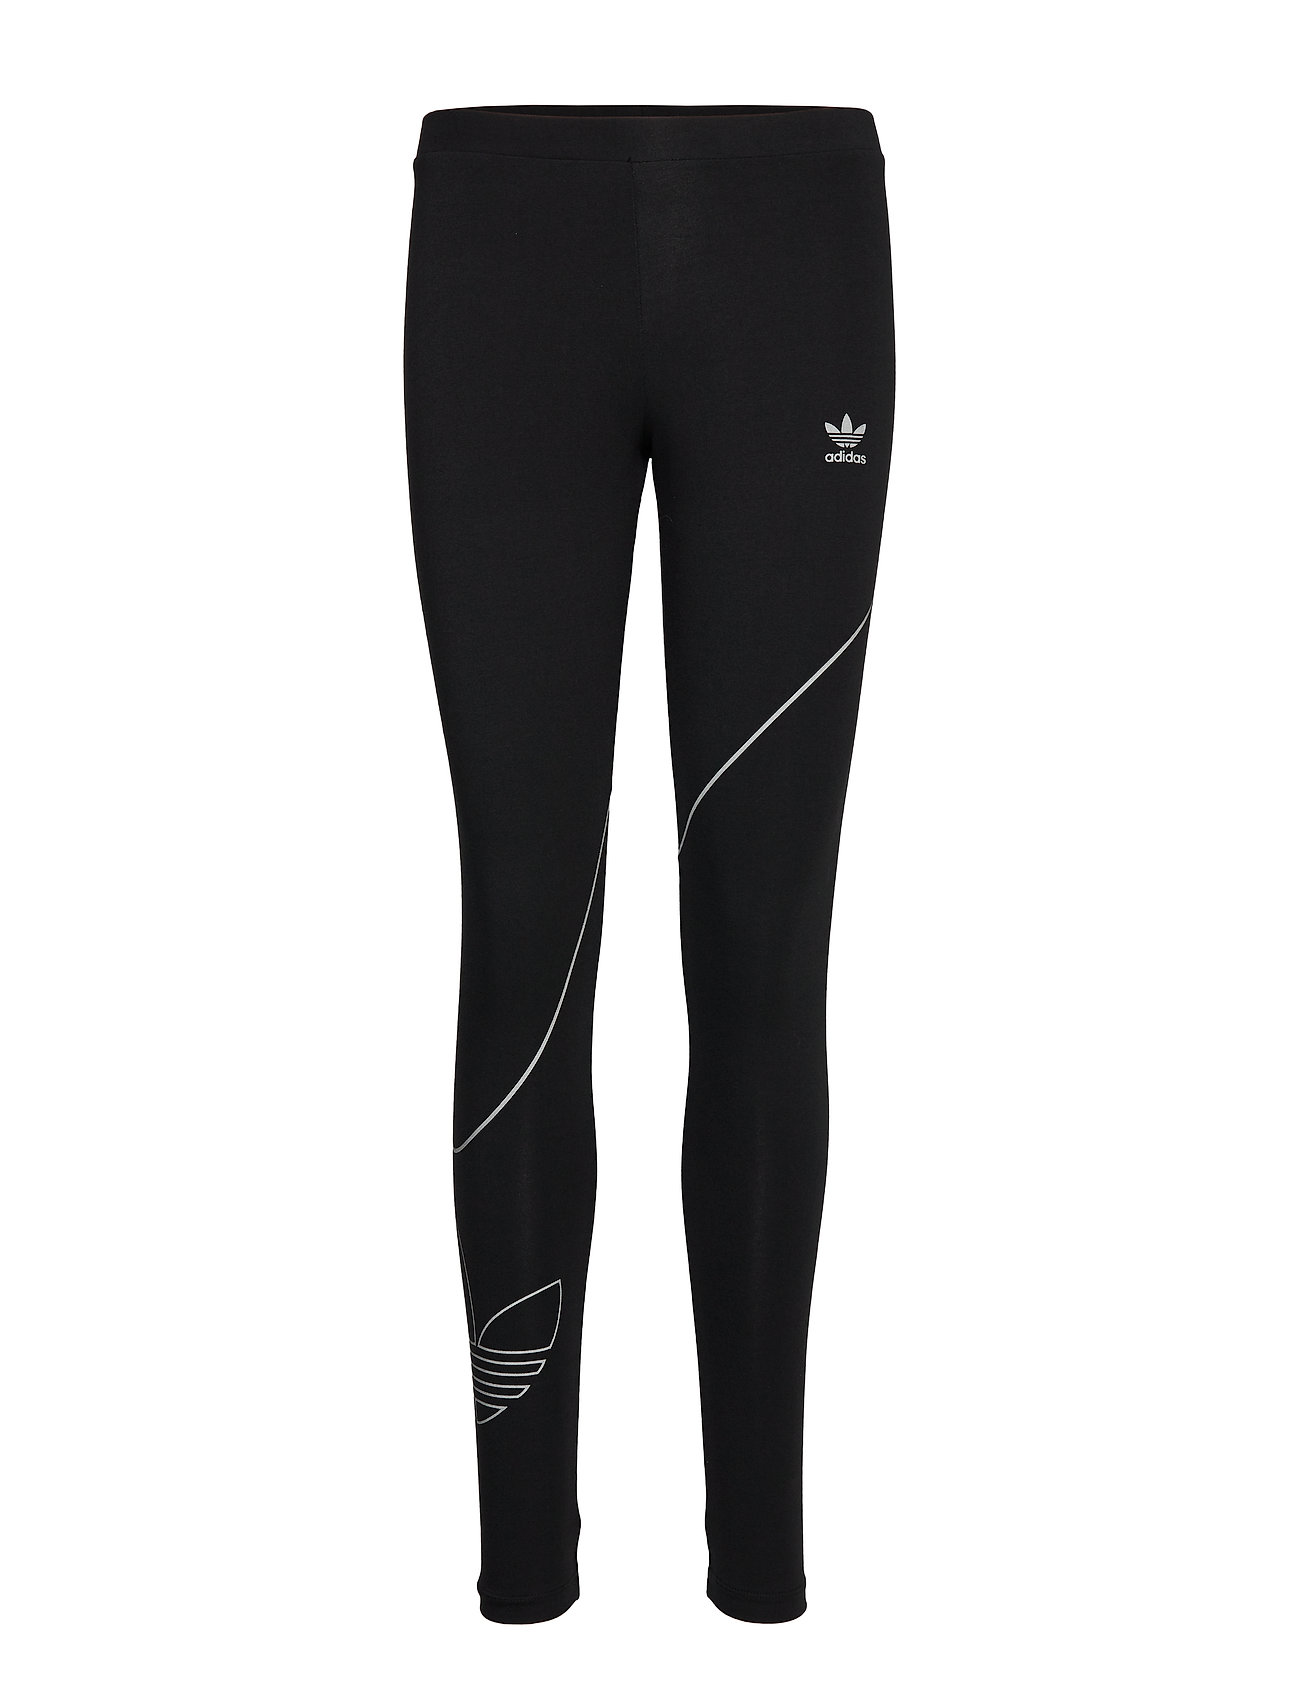 adidas Originals TIGHTS - BLACK